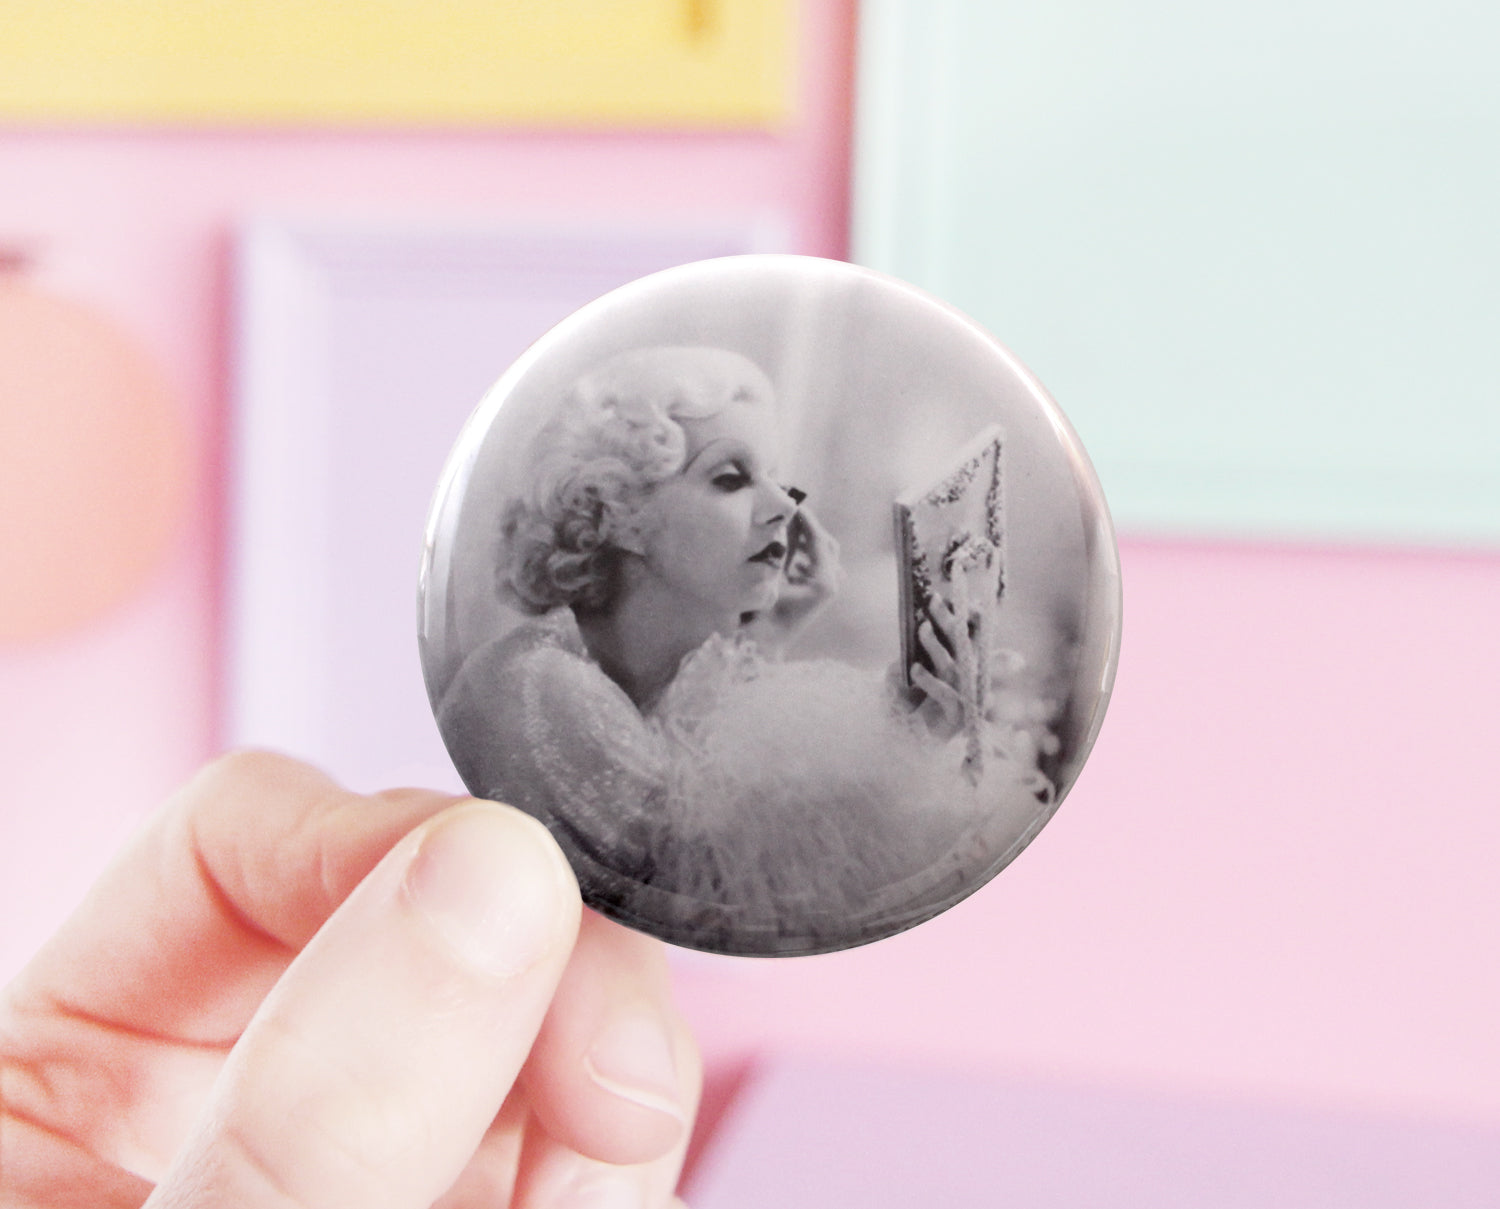 Jean Harlow pocket mirror